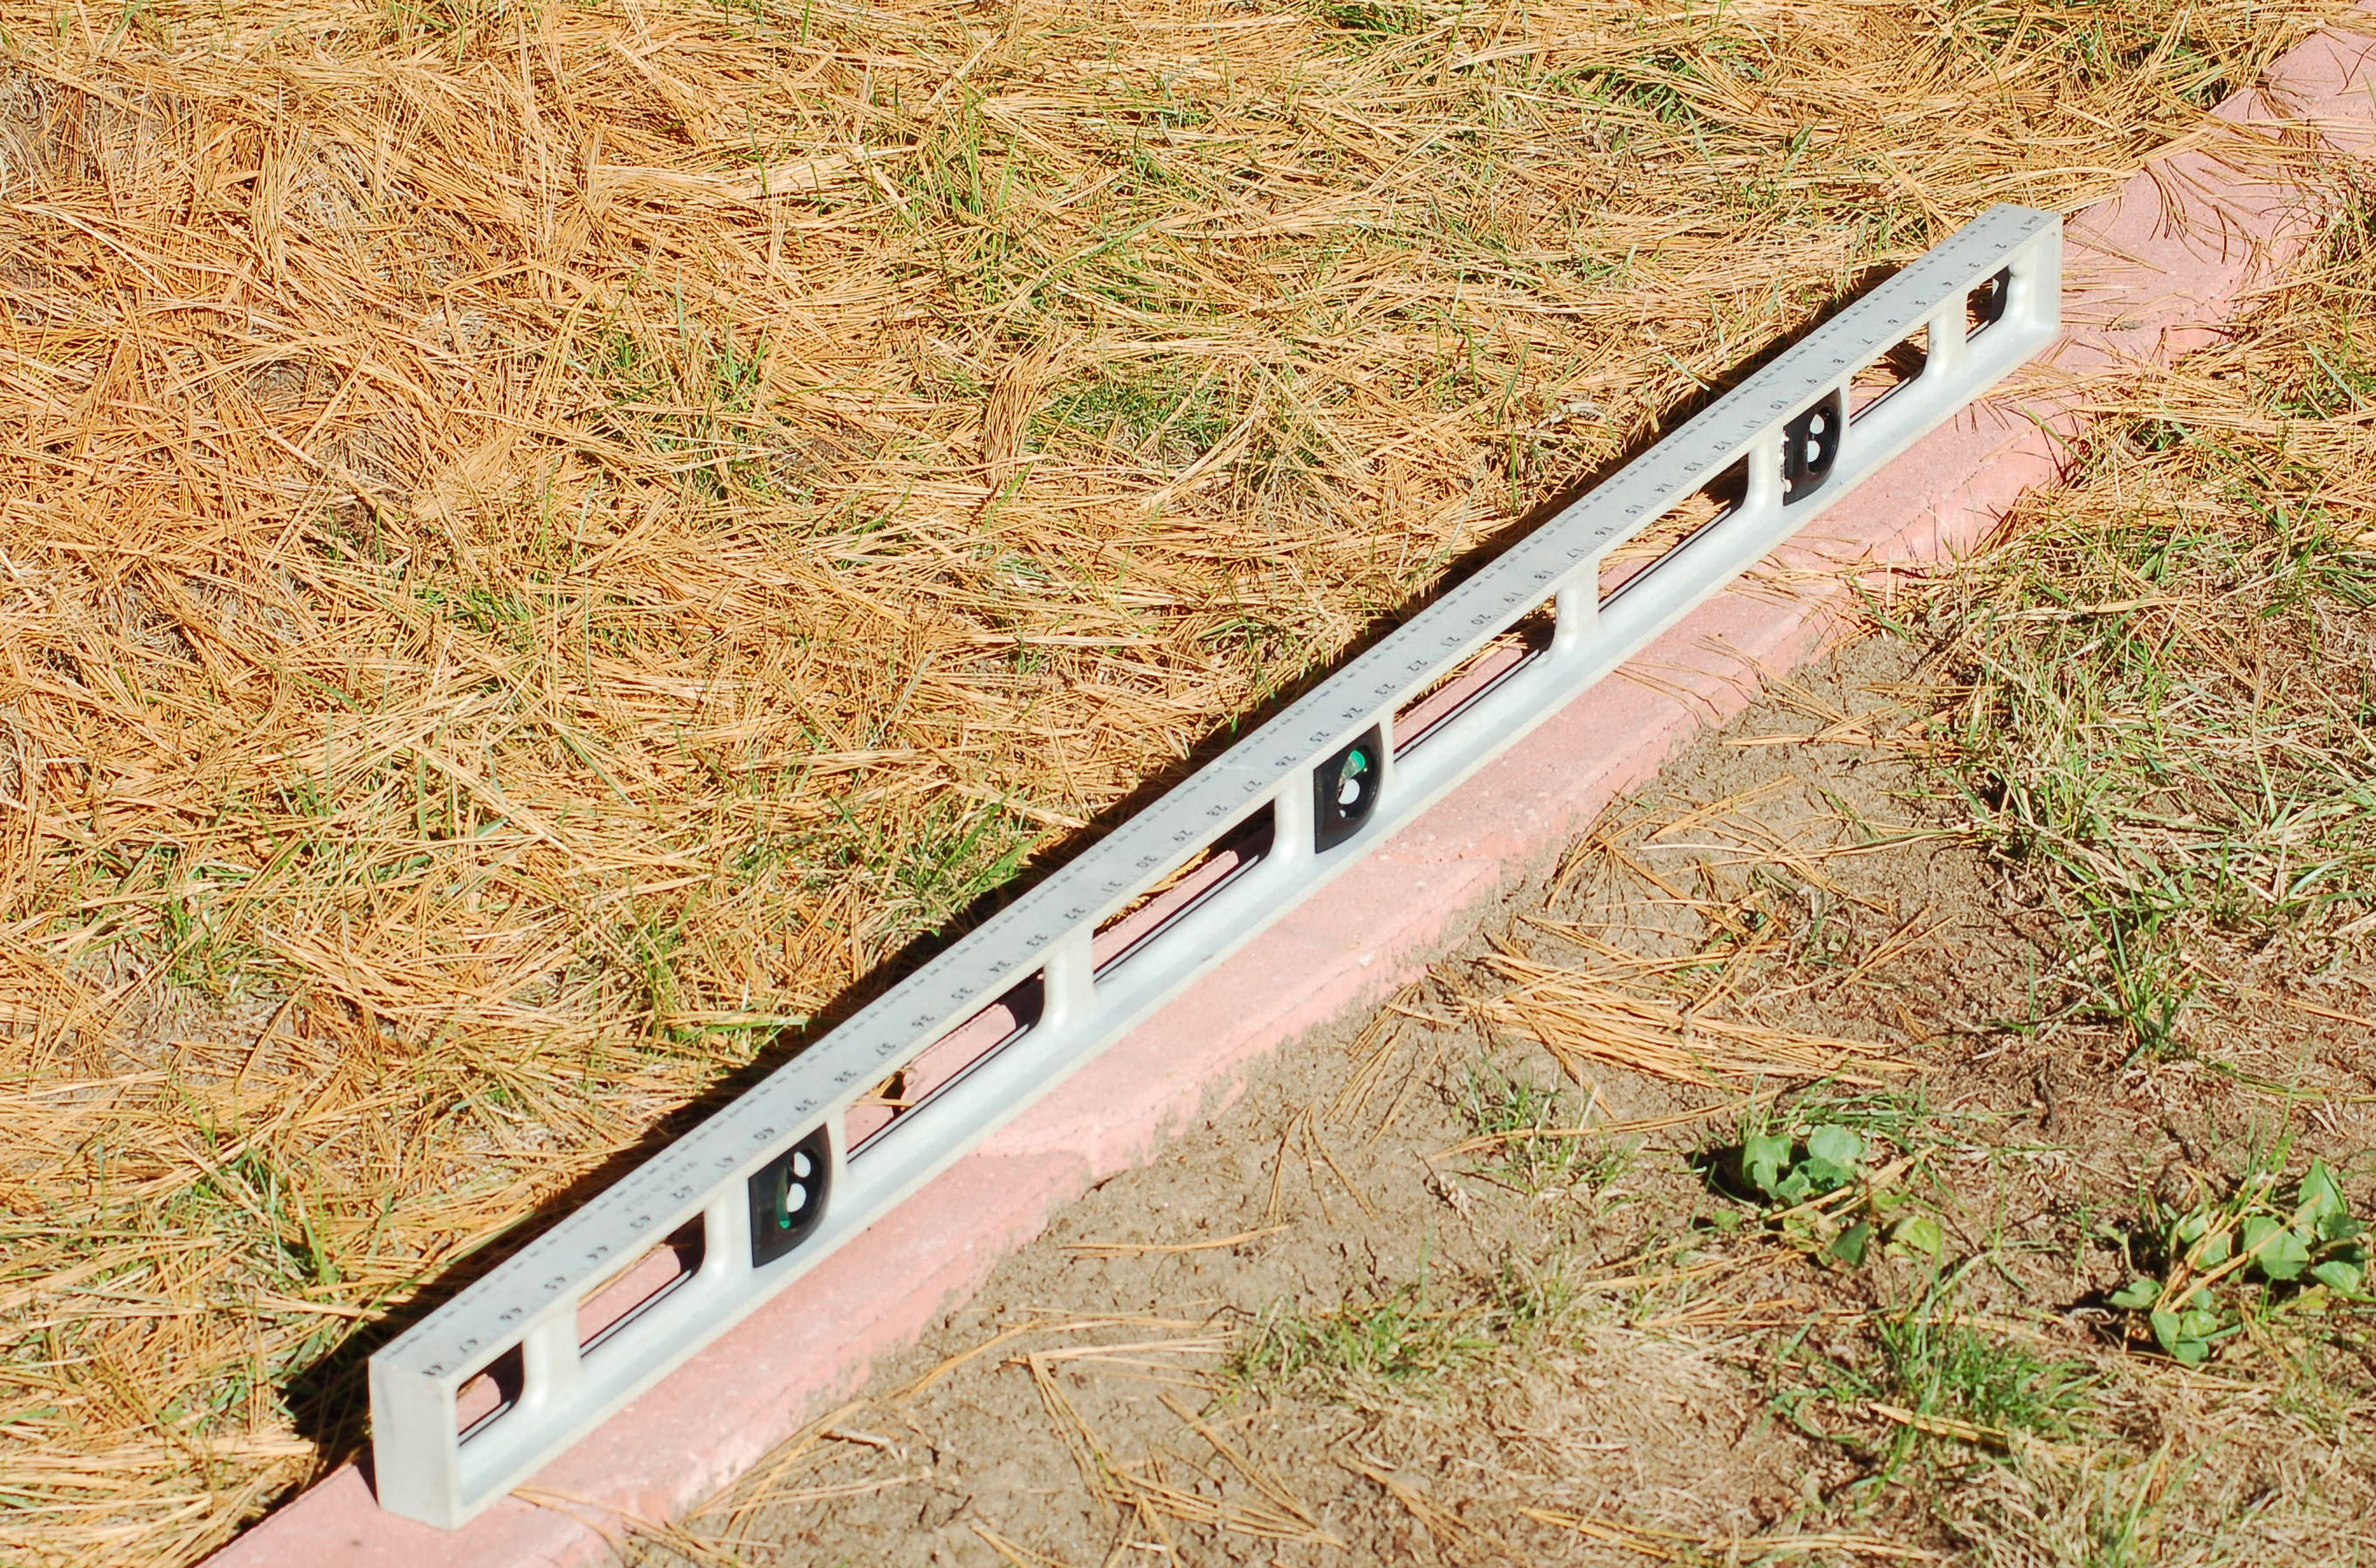 Using a carpenter's level to check that edging pavers are level